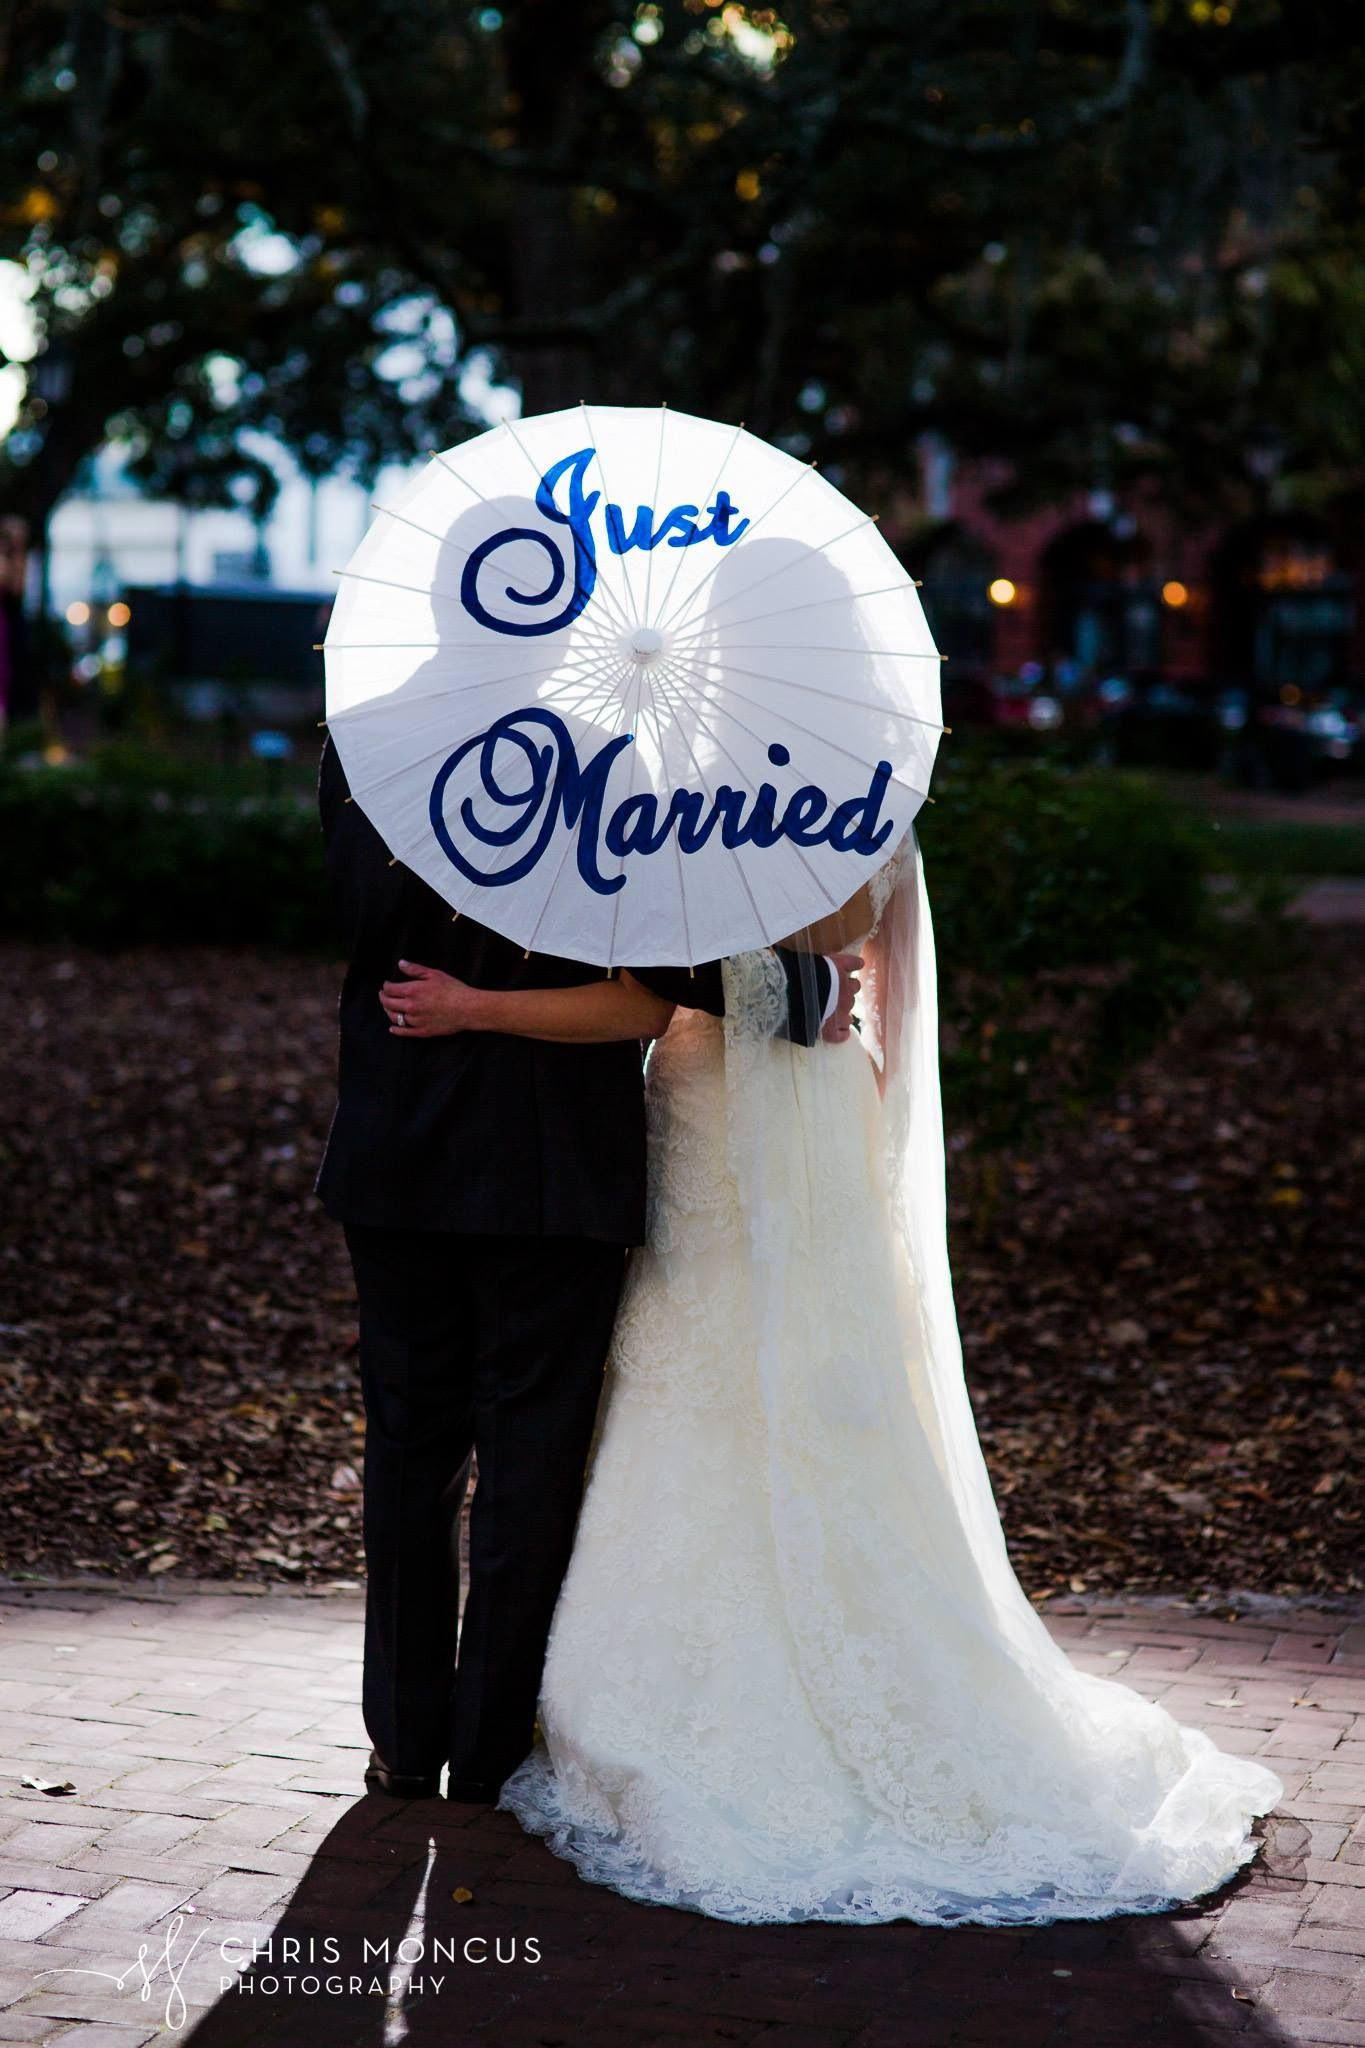 Just married photo prop parasol from etsy photos of the final